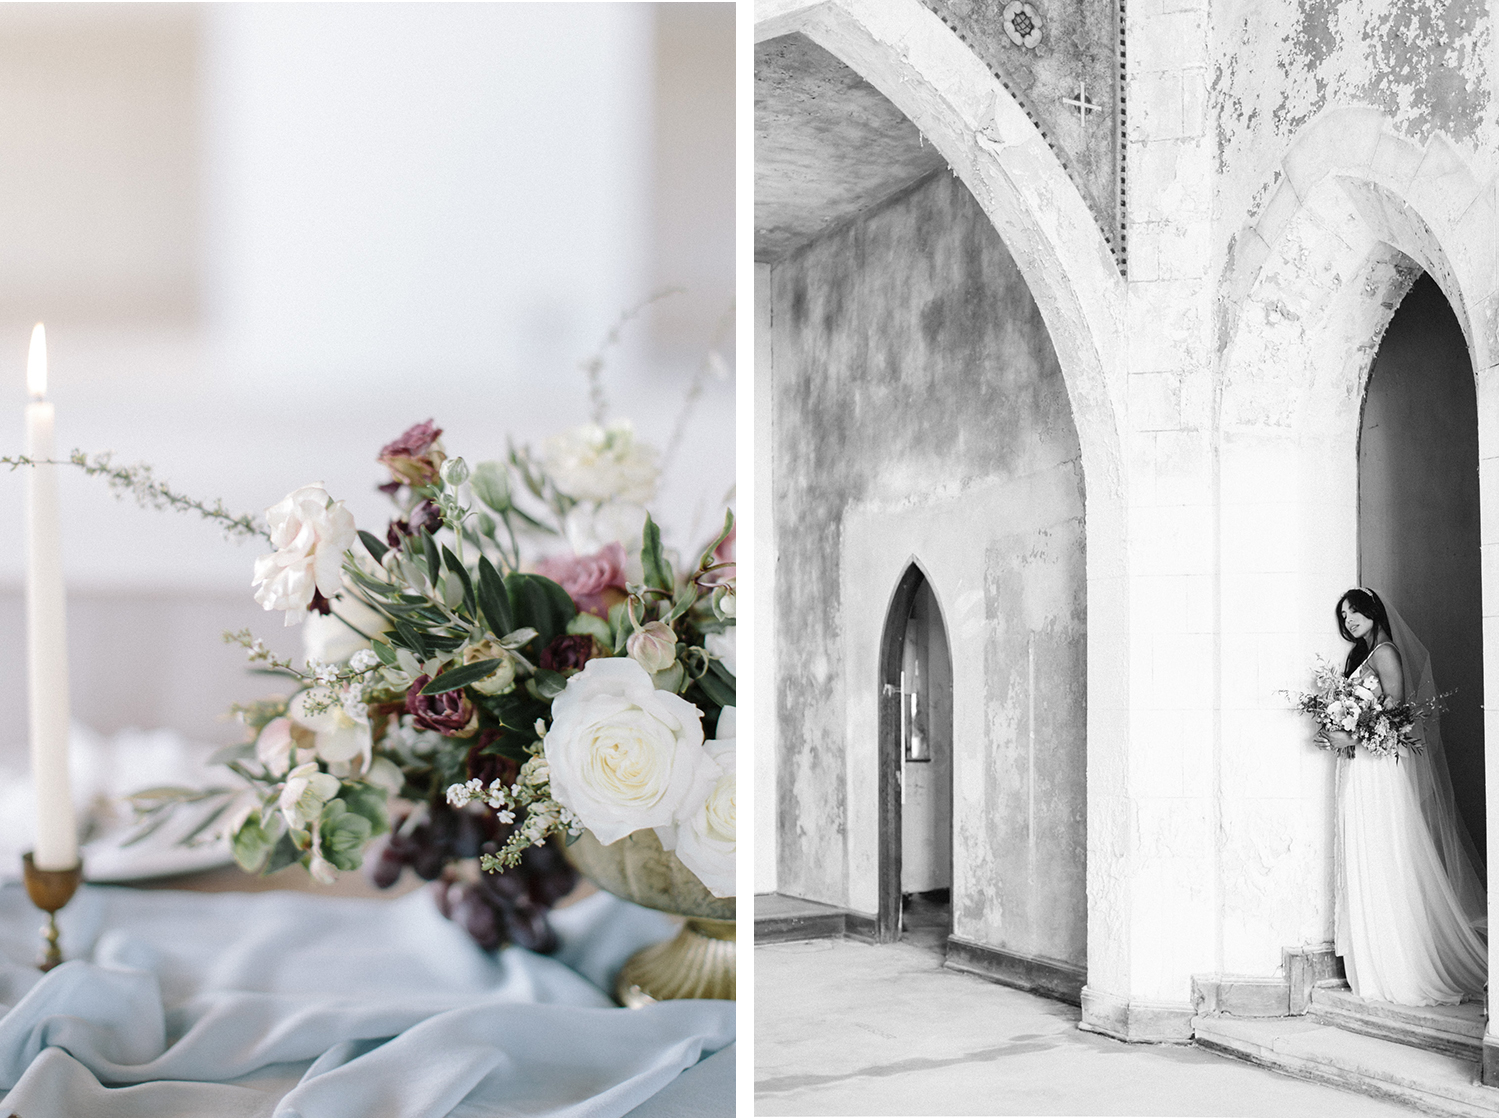 Weathered walls and a beautiful floral centerpiece at a destination wedding